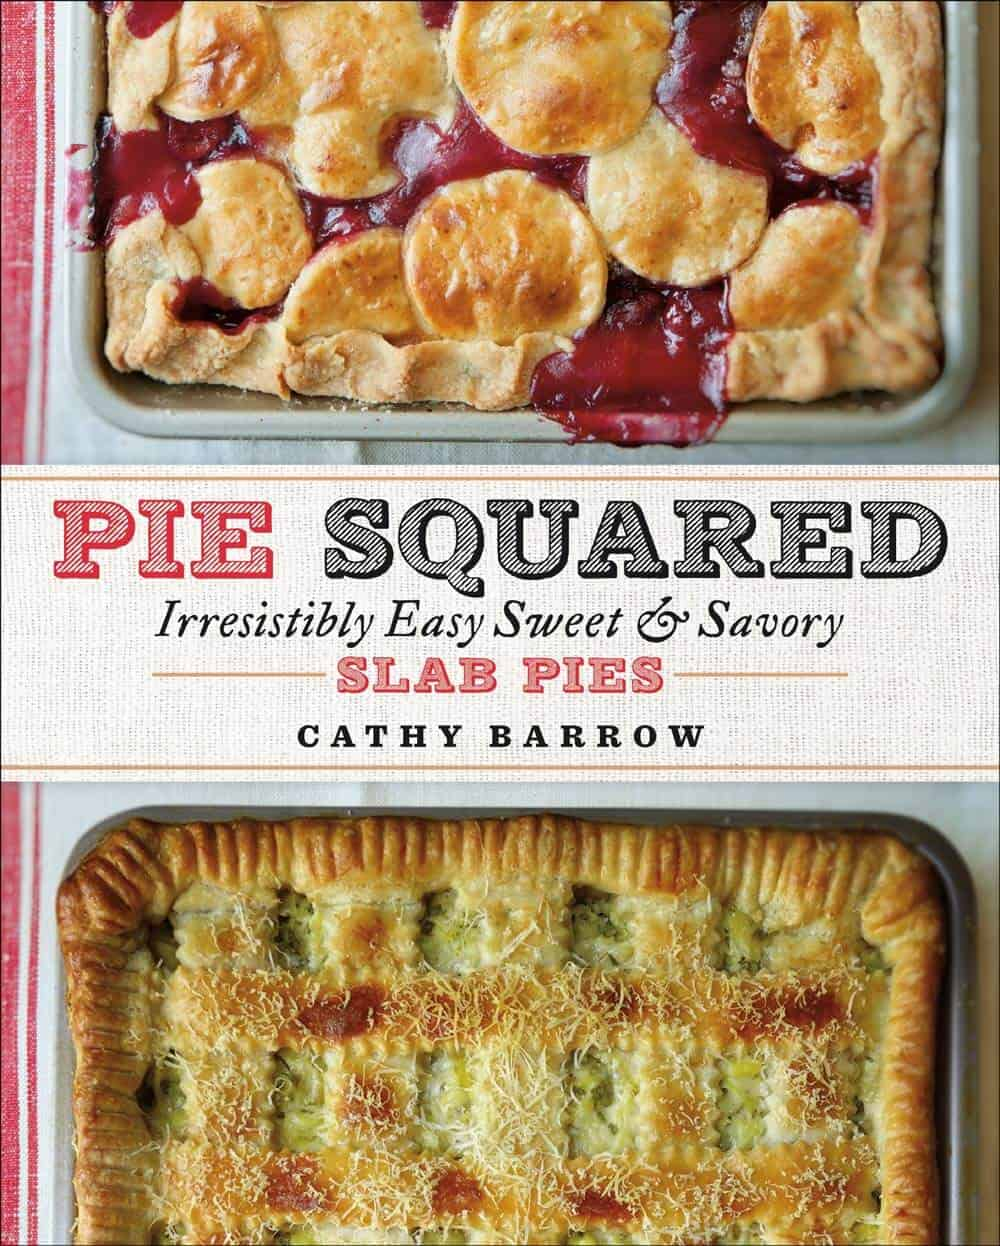 Cover of Pie Squared by Cathy Barrow